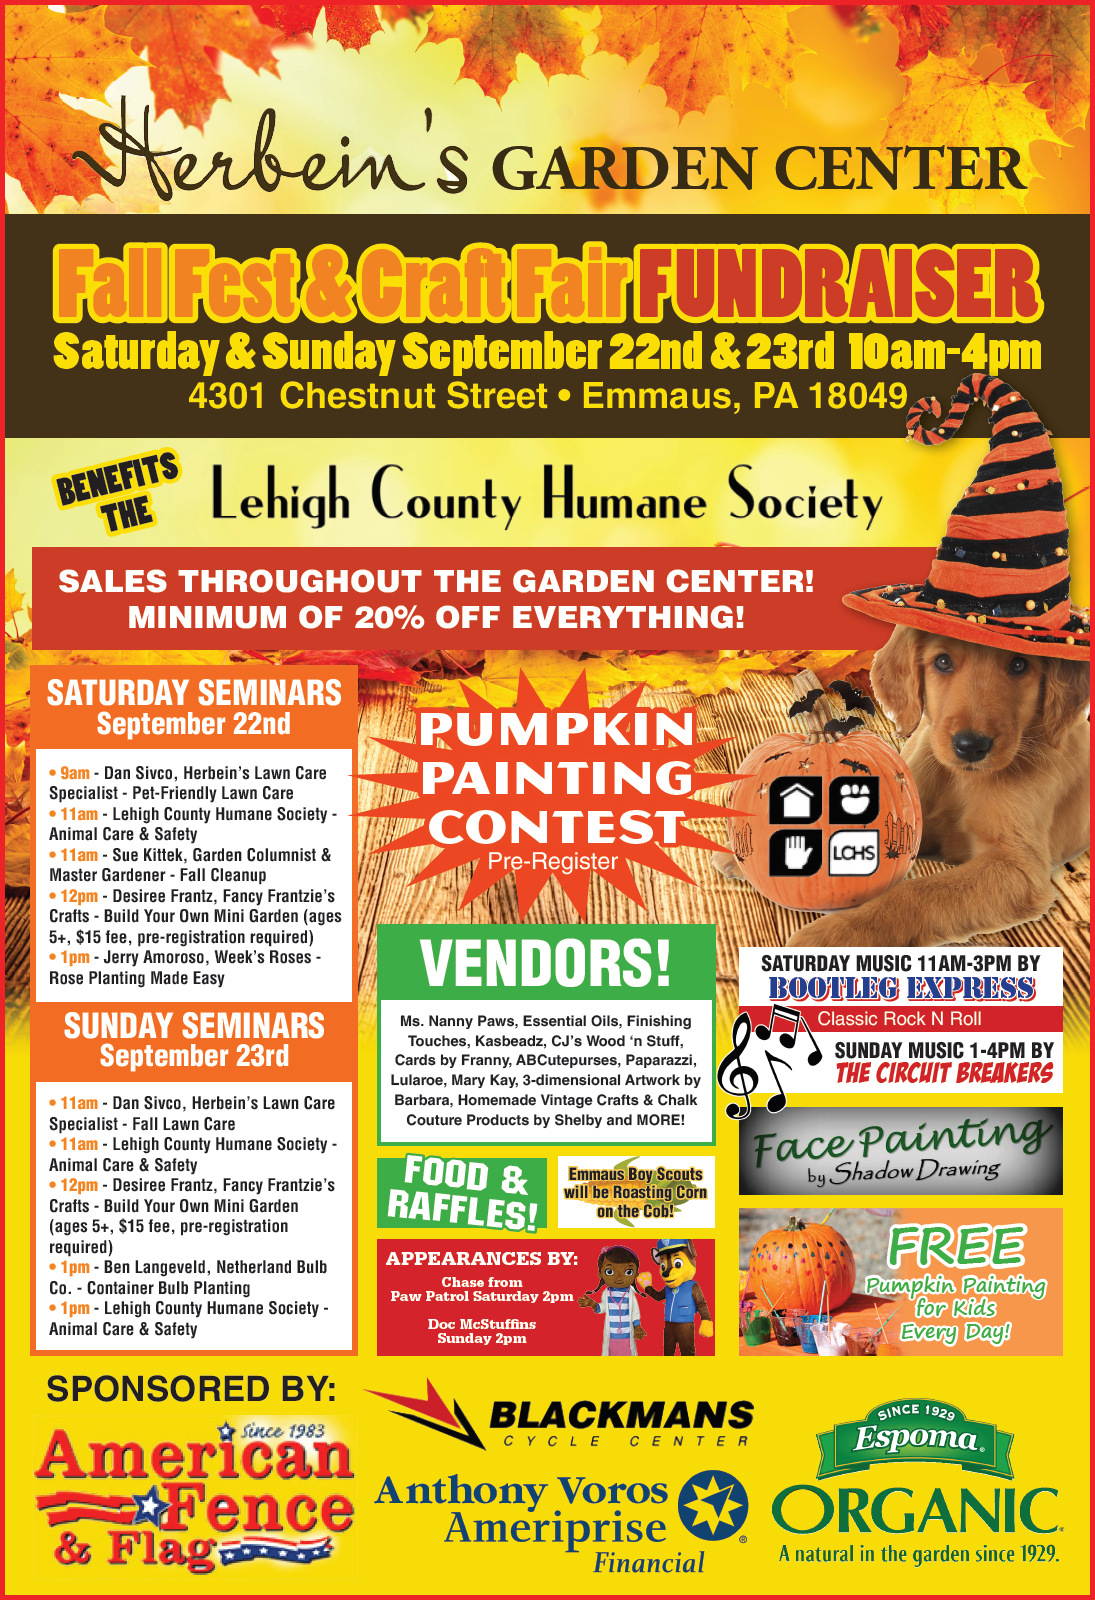 Herbeins Garden Center 2018 Fall Fest Poster